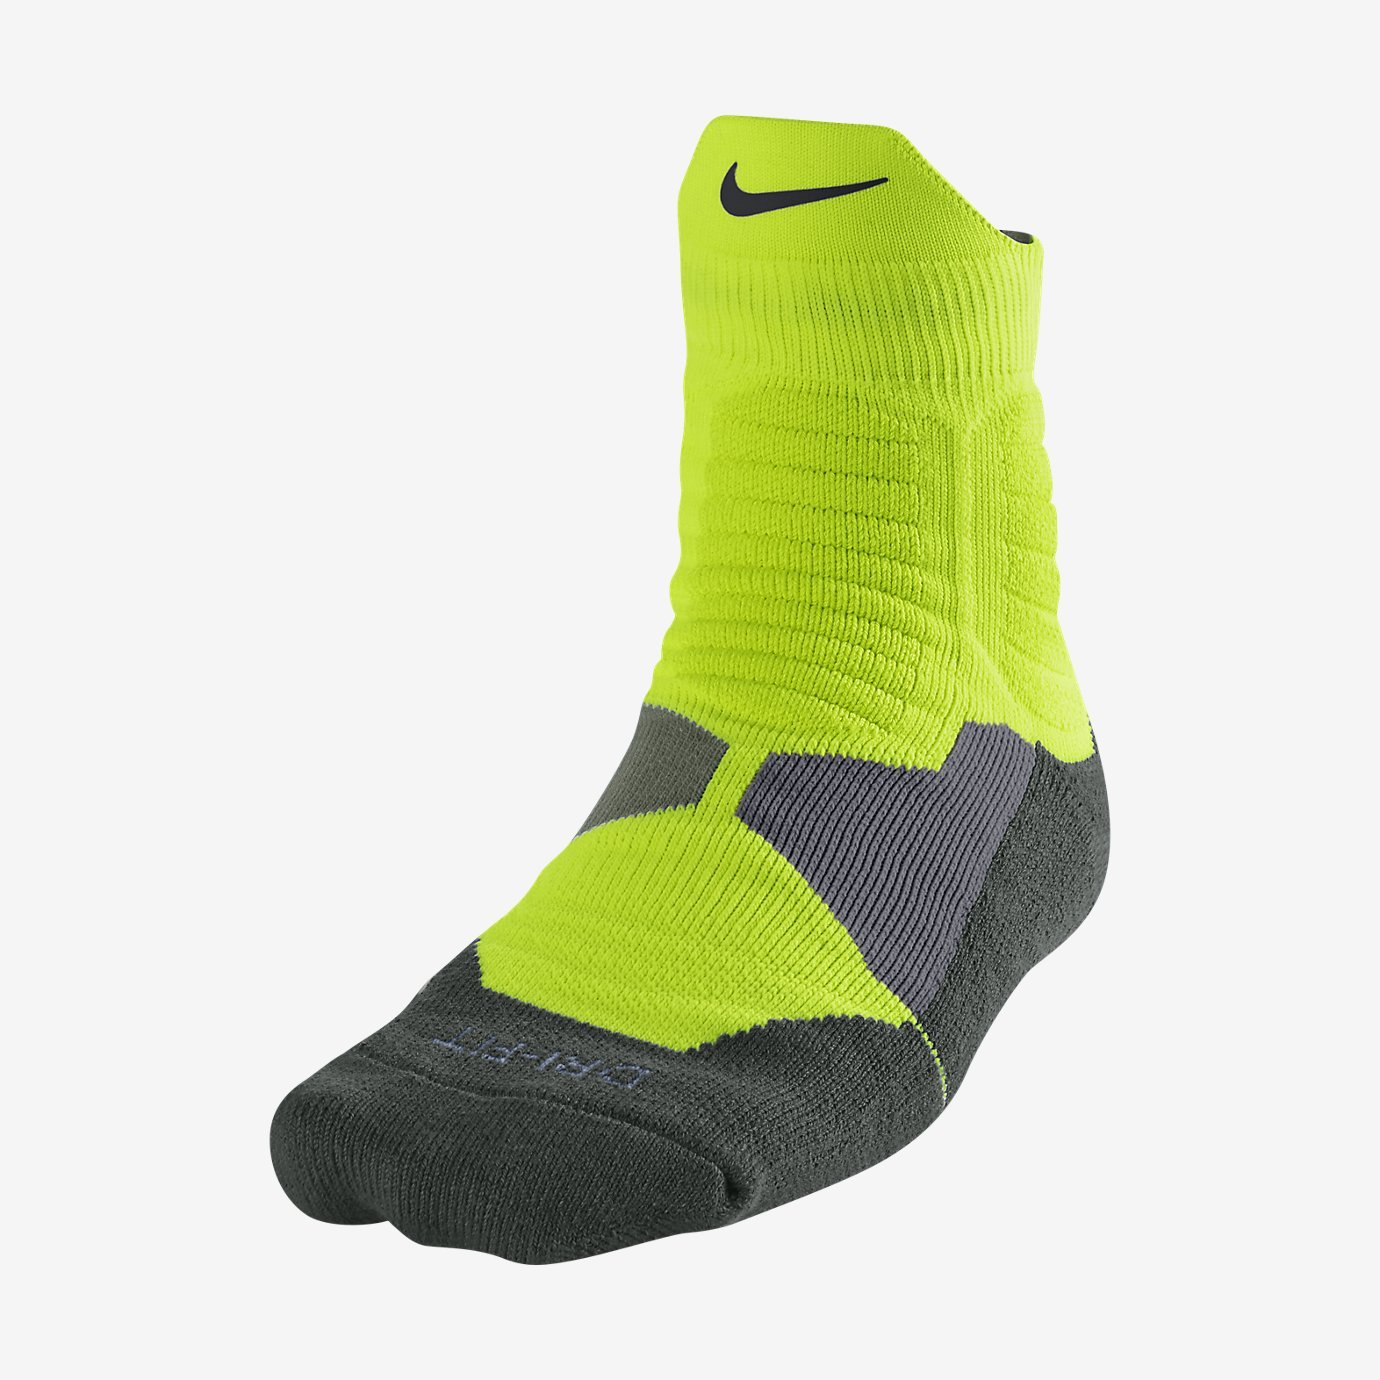 Nike Hyper Elite Basketball High Quarter Socks Large (Volt/Deep Green/Iron Green) чулок д щитков nike guard lock elite sleeve su12 se0173 011 m чёрный